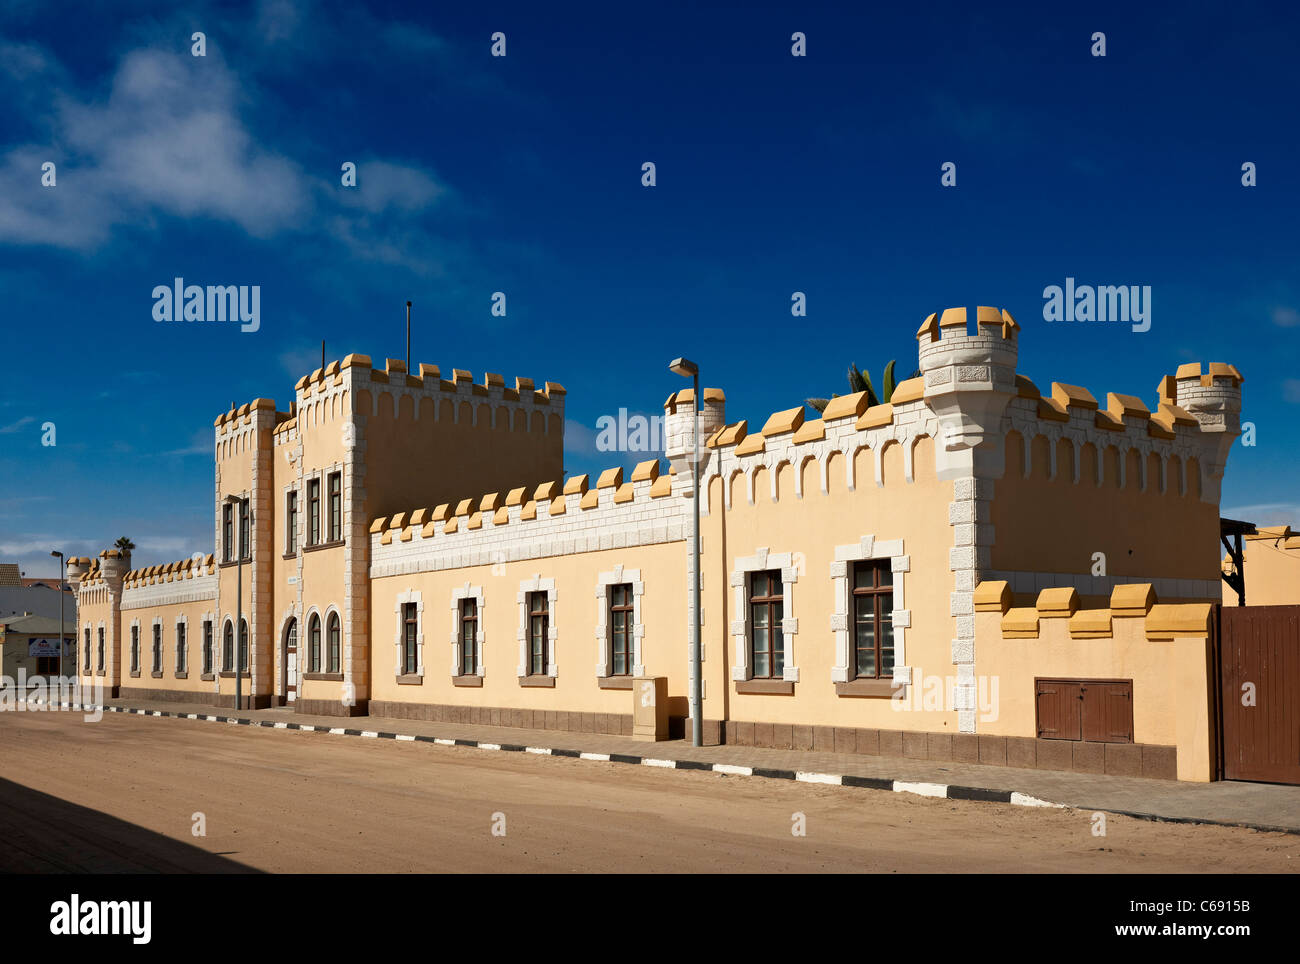 historical German barracks from colonial times, now youth hostel, Swakopmund, Namibia, Africa Stock Photo